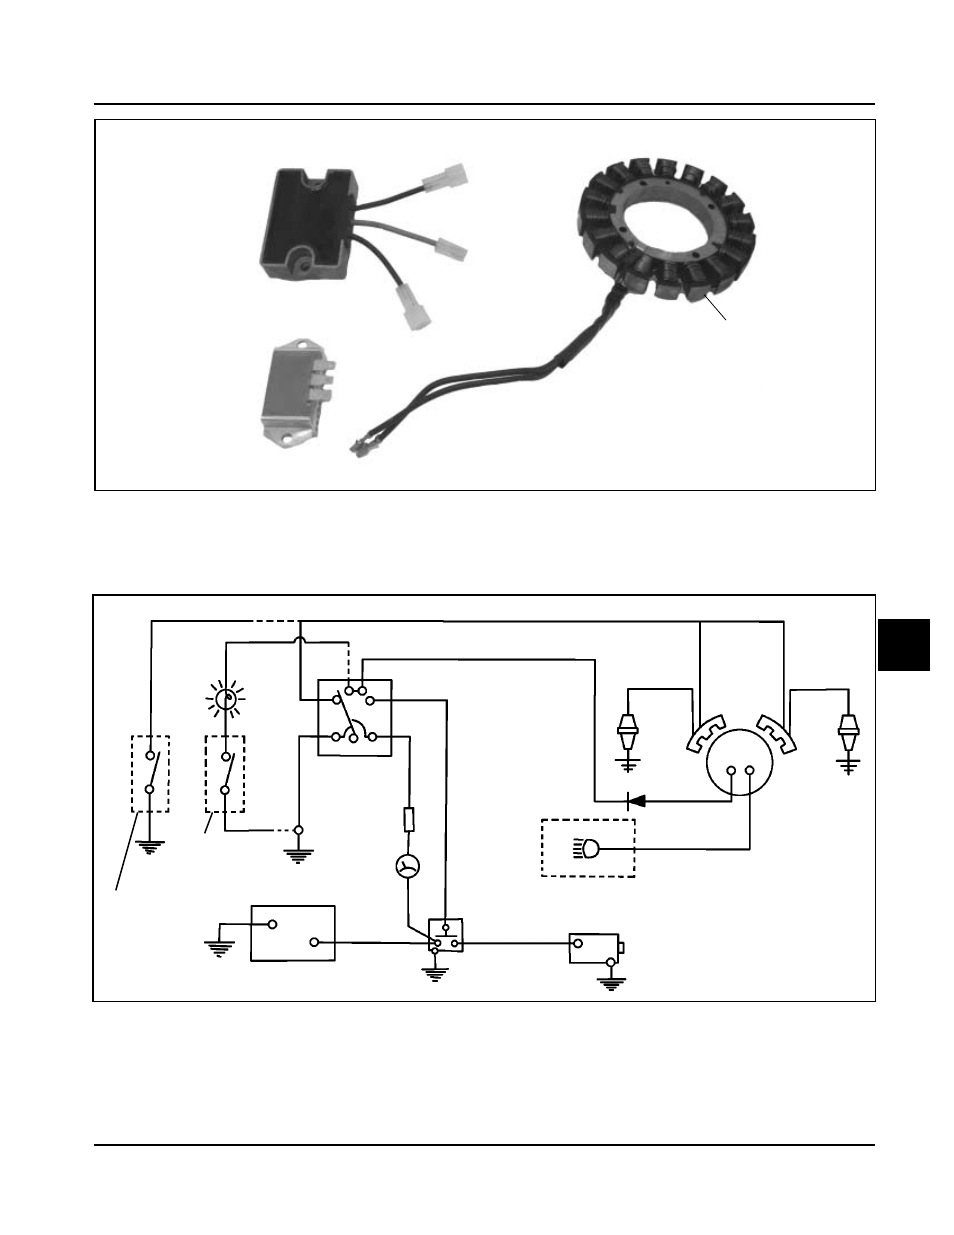 3 Amp Unregulated Charging System Kohler Command Ch18 745 User 12 Volt Diagram Manual Page 132 218